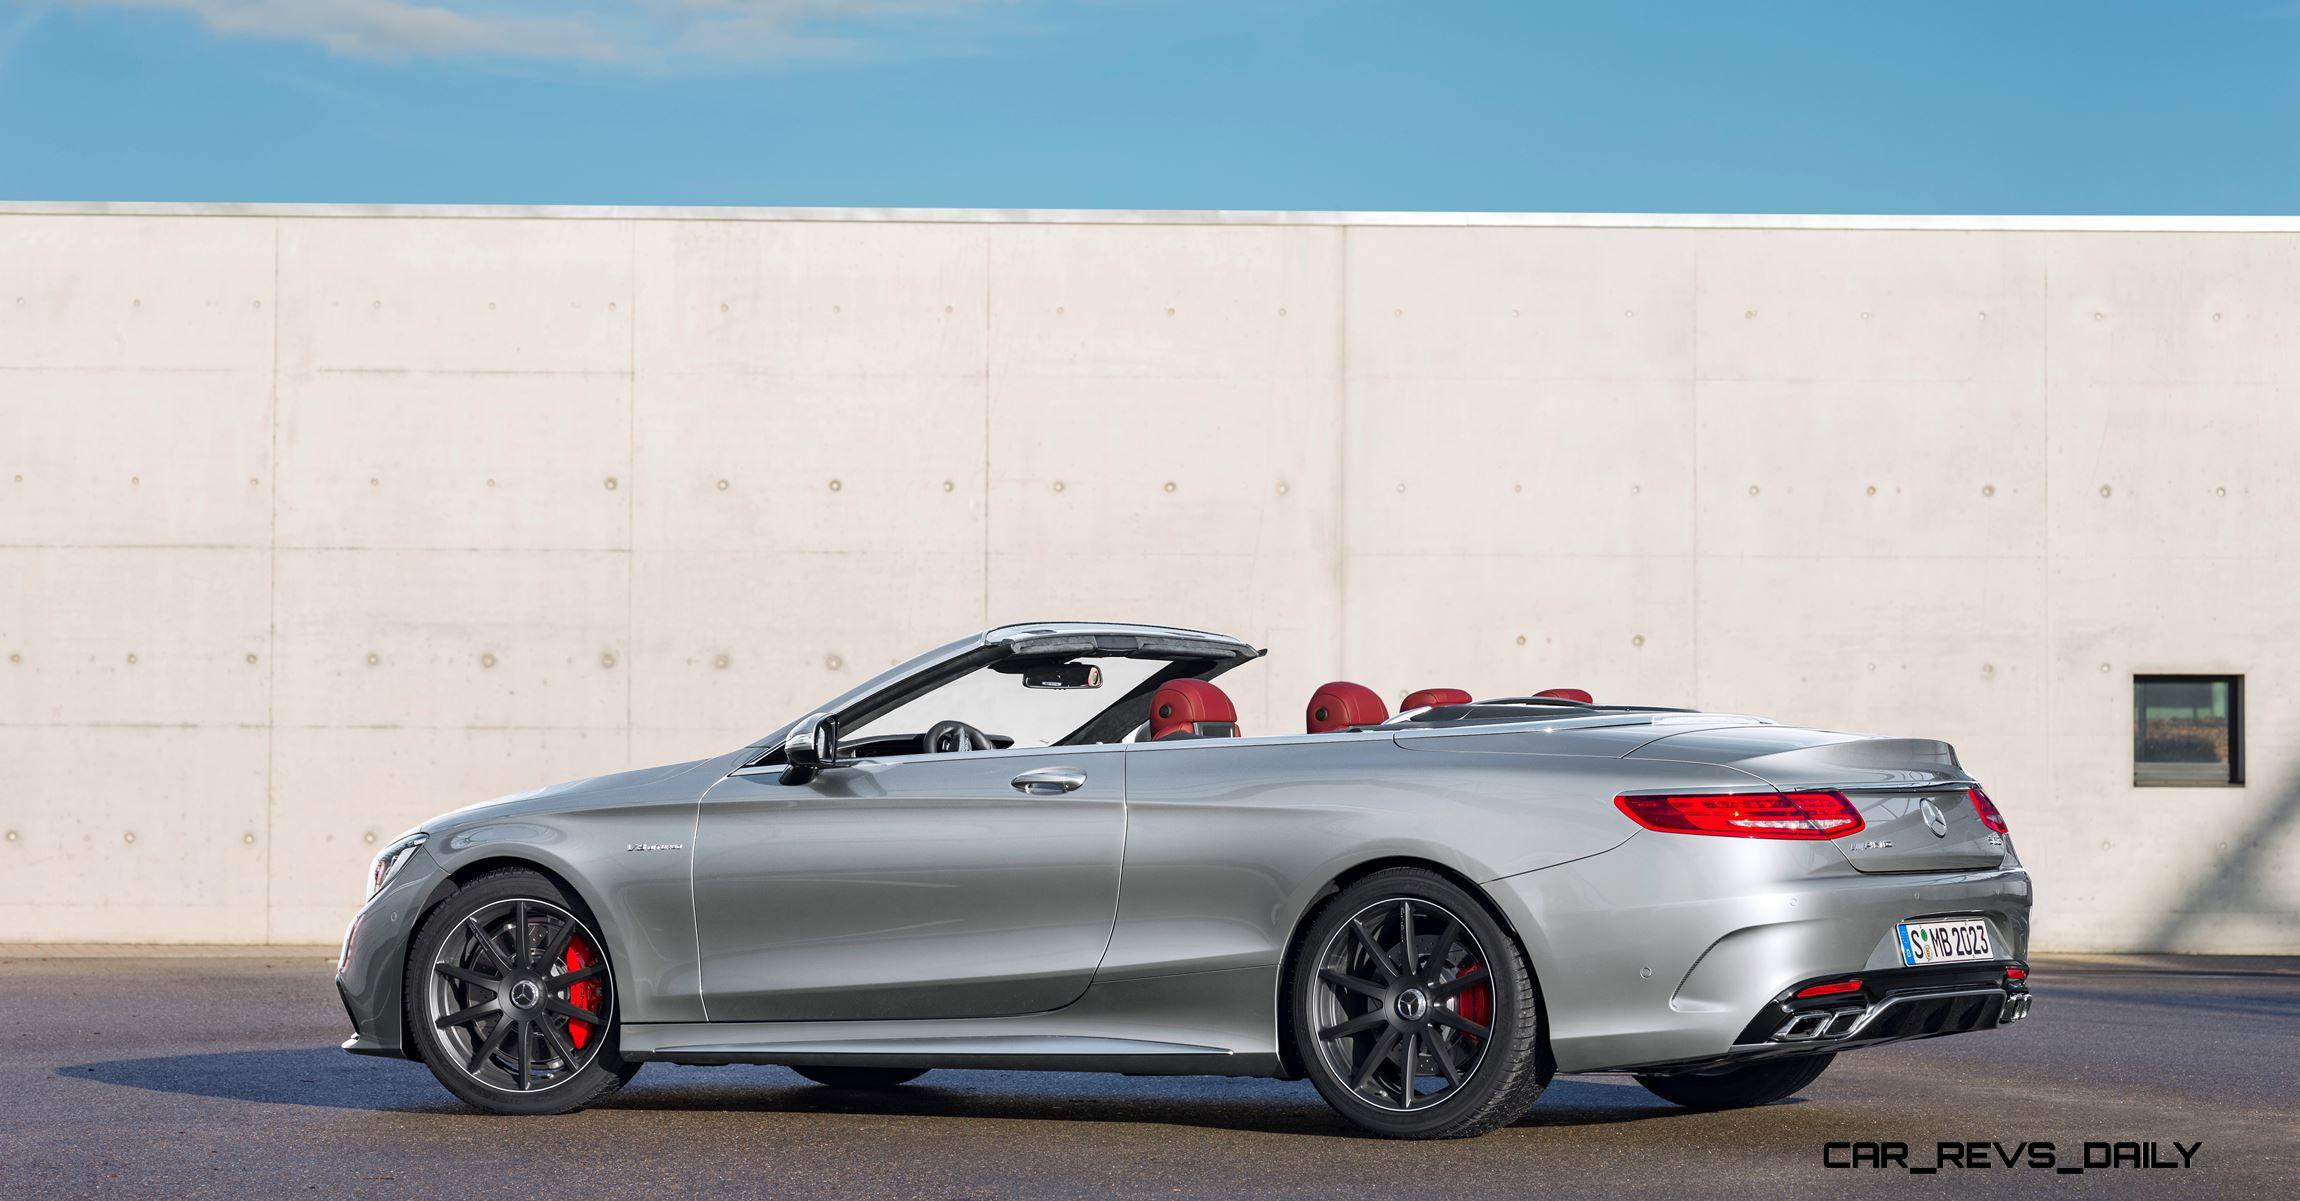 http://www.car-revs-daily.com/wp-content/uploads/2016-Mercedes-AMG-S63-4MATIC-Cabriolet-Edition-130-15.jpg